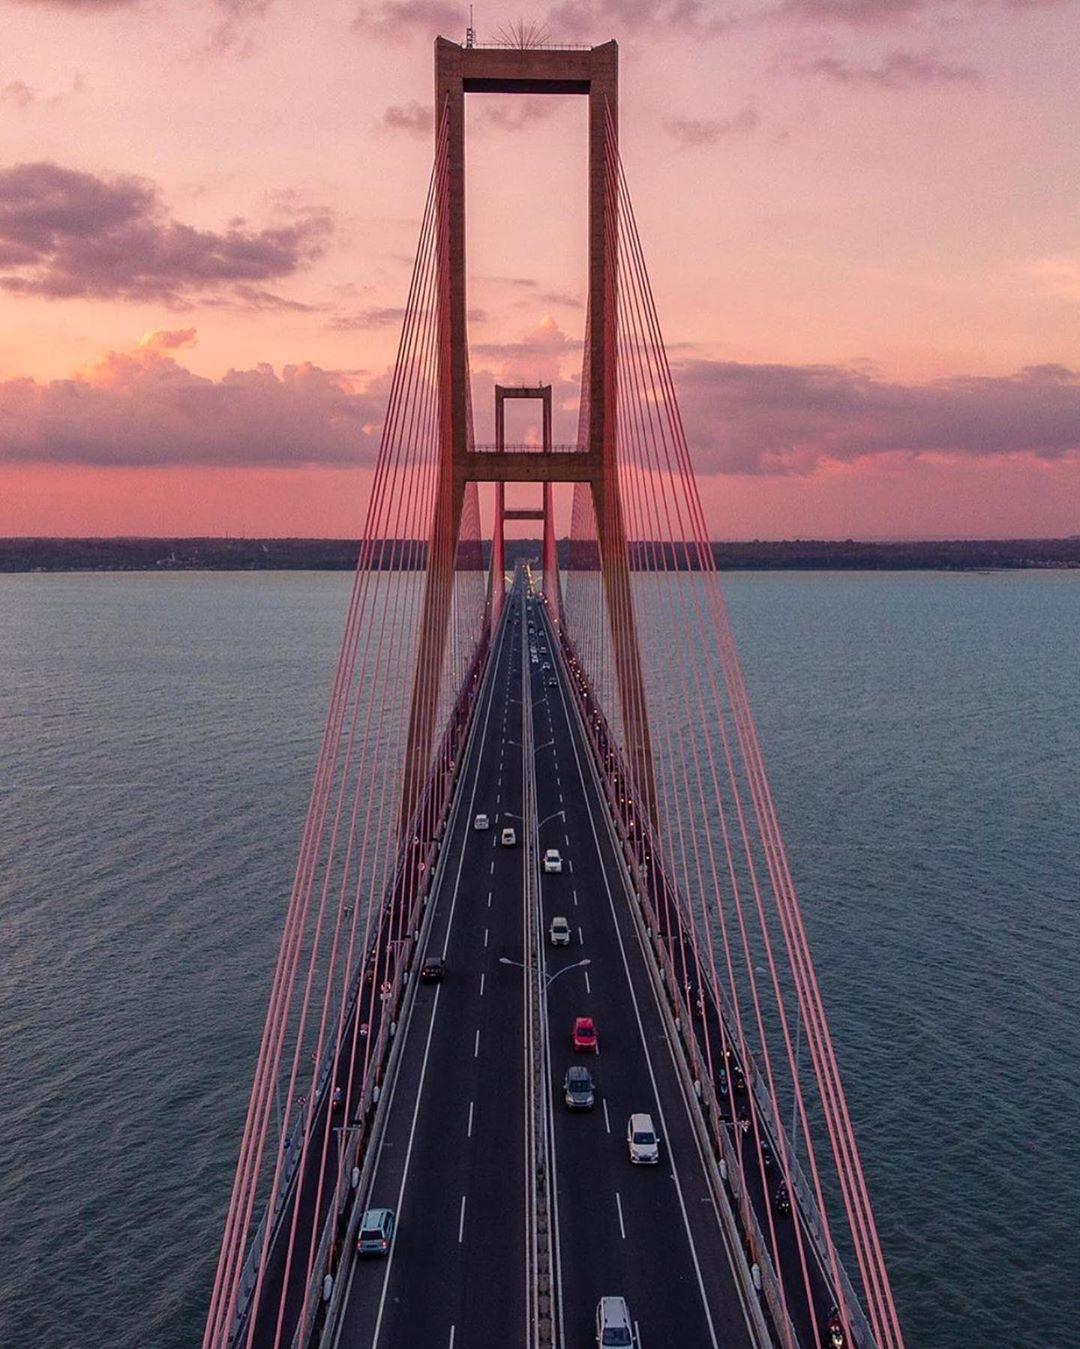 Suramadu Bridge - IG @raissatito